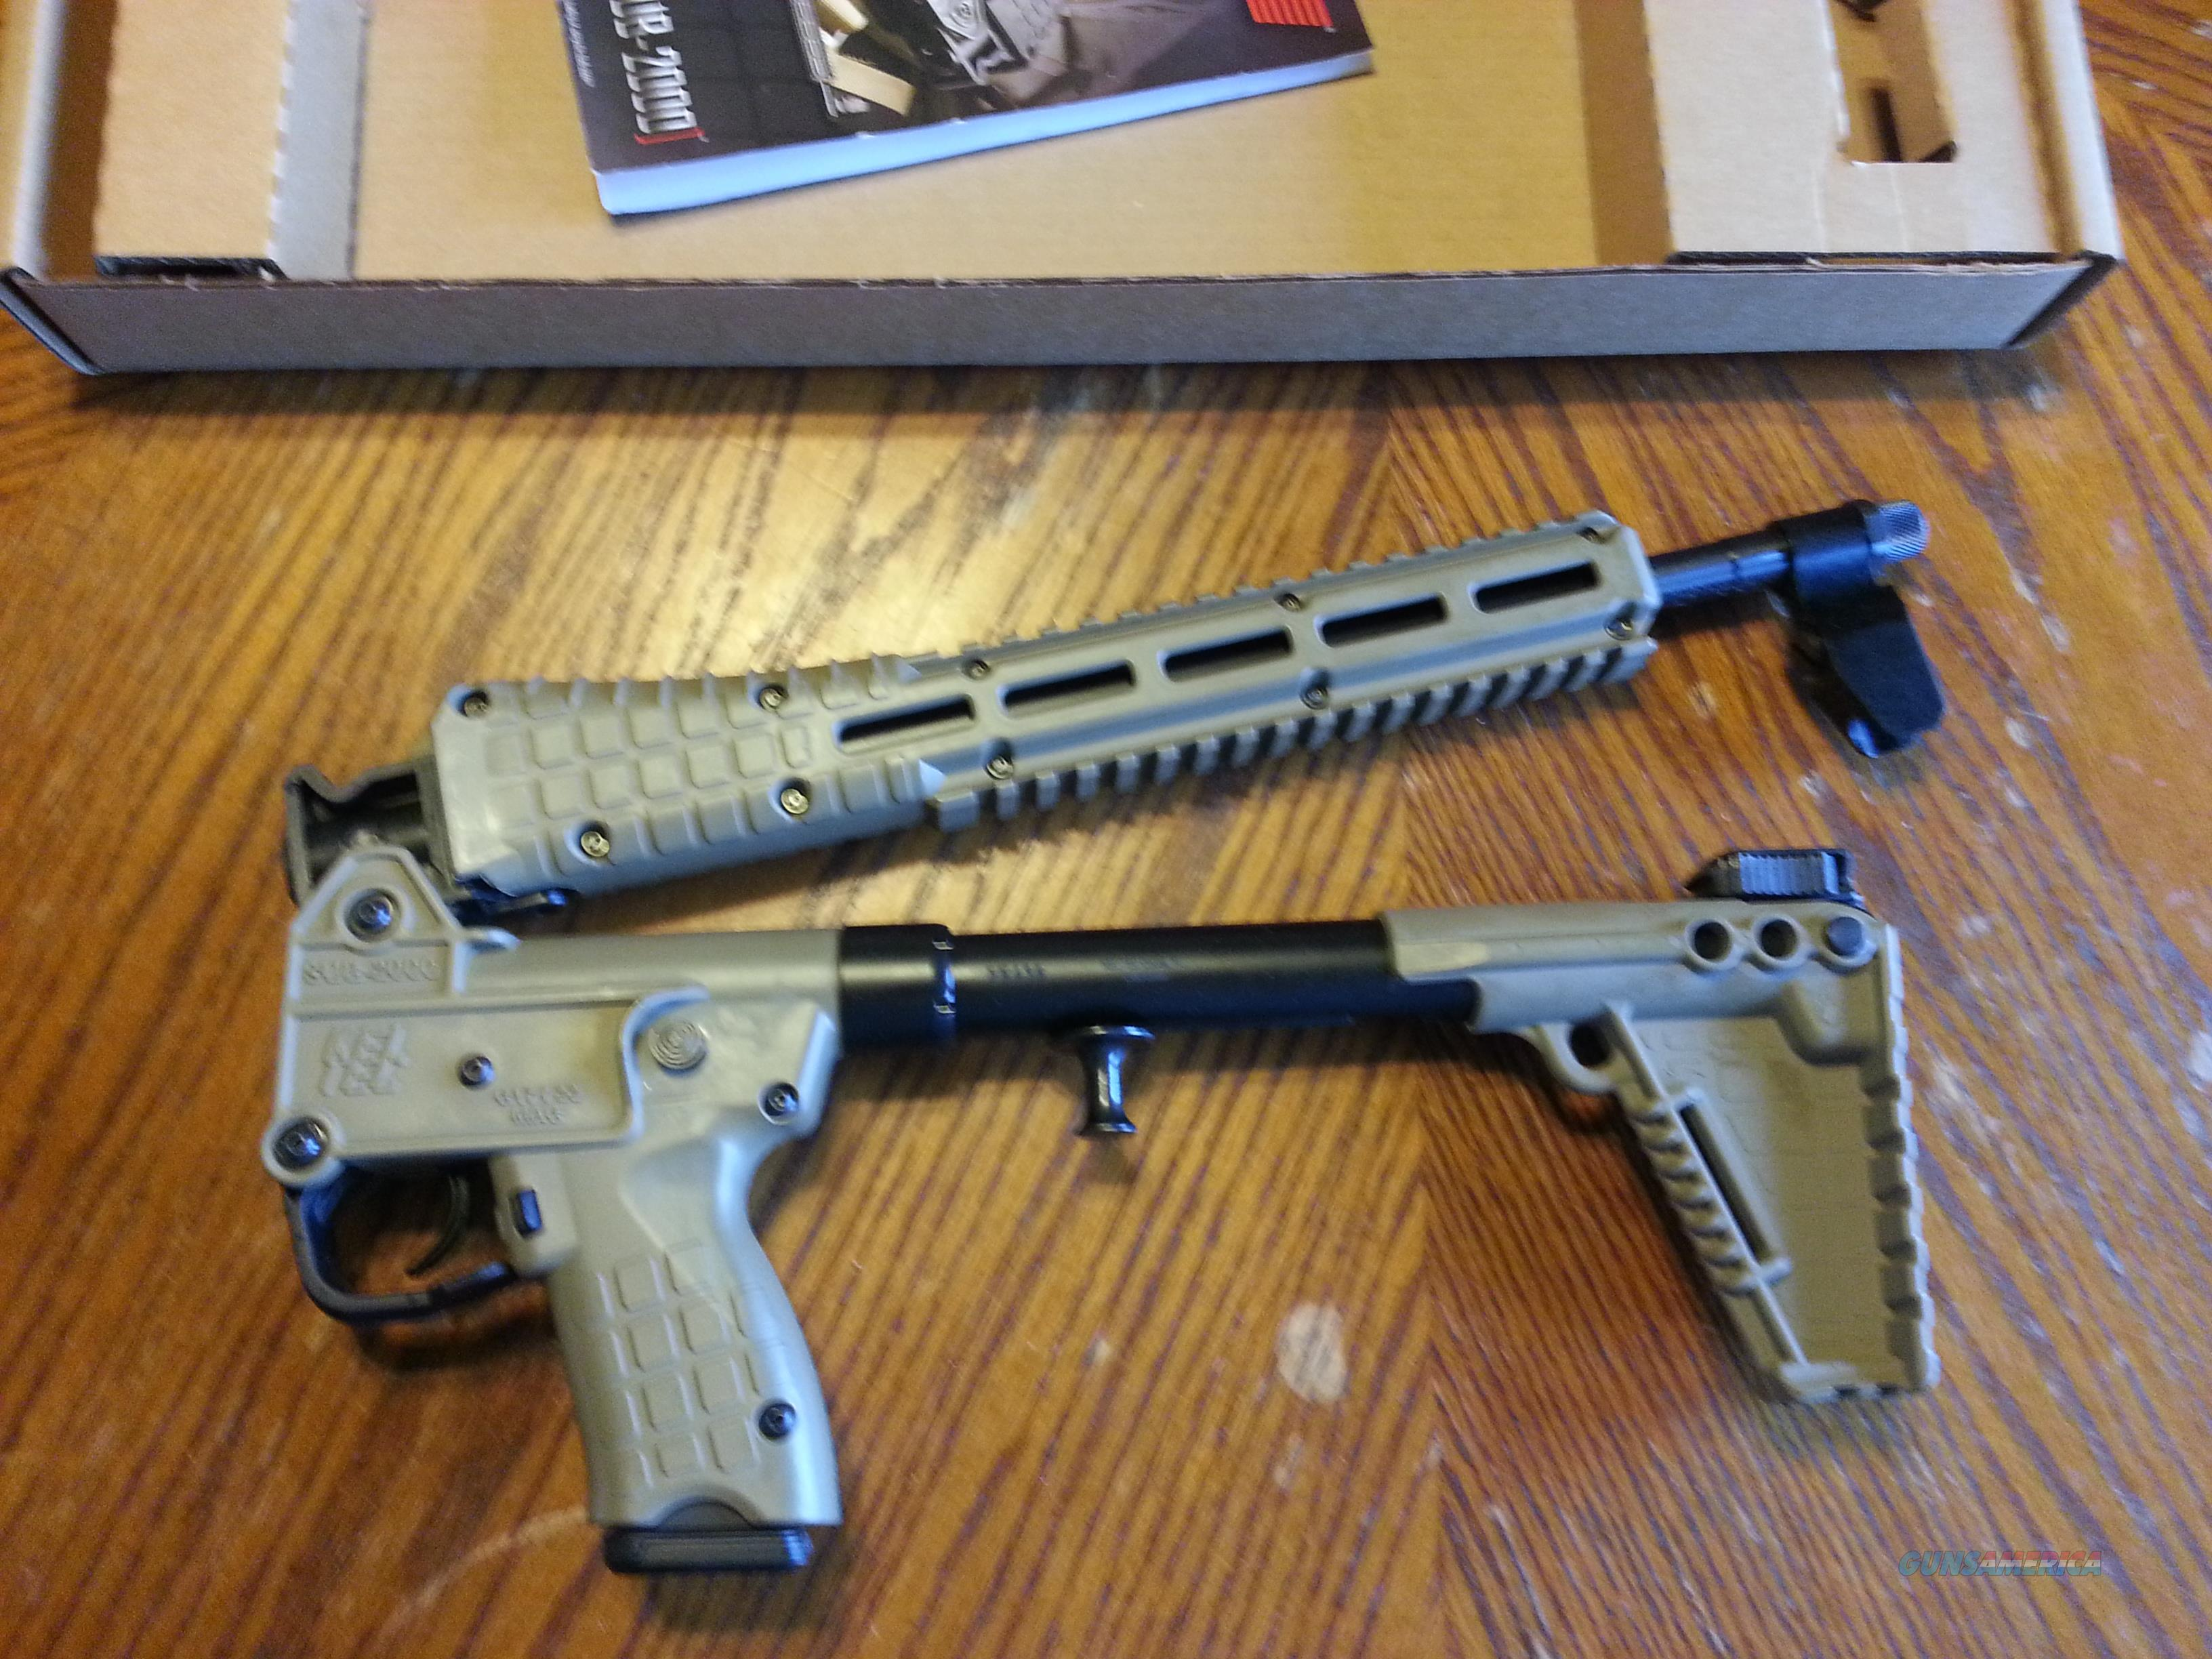 Kel Tec Rifle Local Deals National For Sale User Ratings At